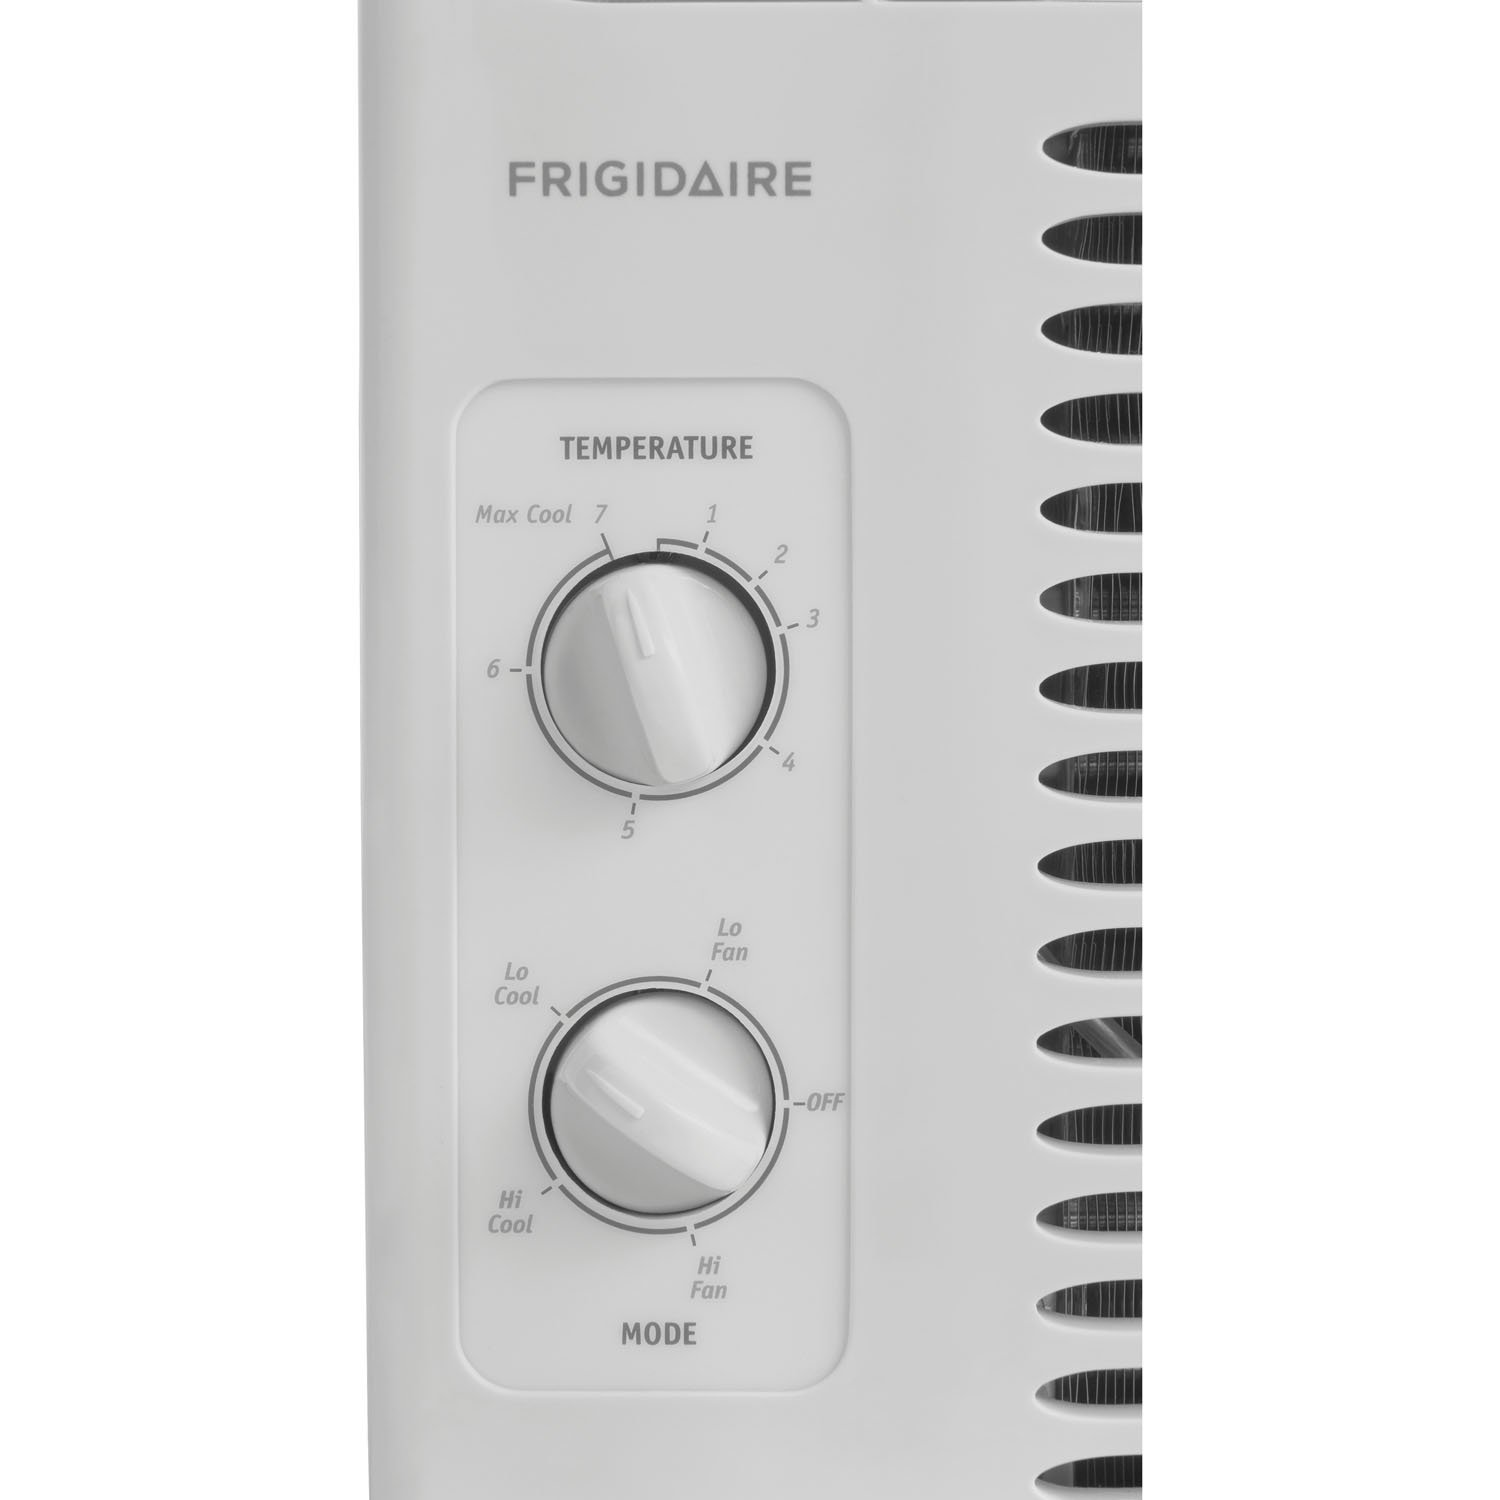 Frigidaire FFRA0511R1 5, 000 BTU 115V Window-Mounted Mini-Compact Air Conditioner with Mechanical Controls by Frigidaire (Image #9)